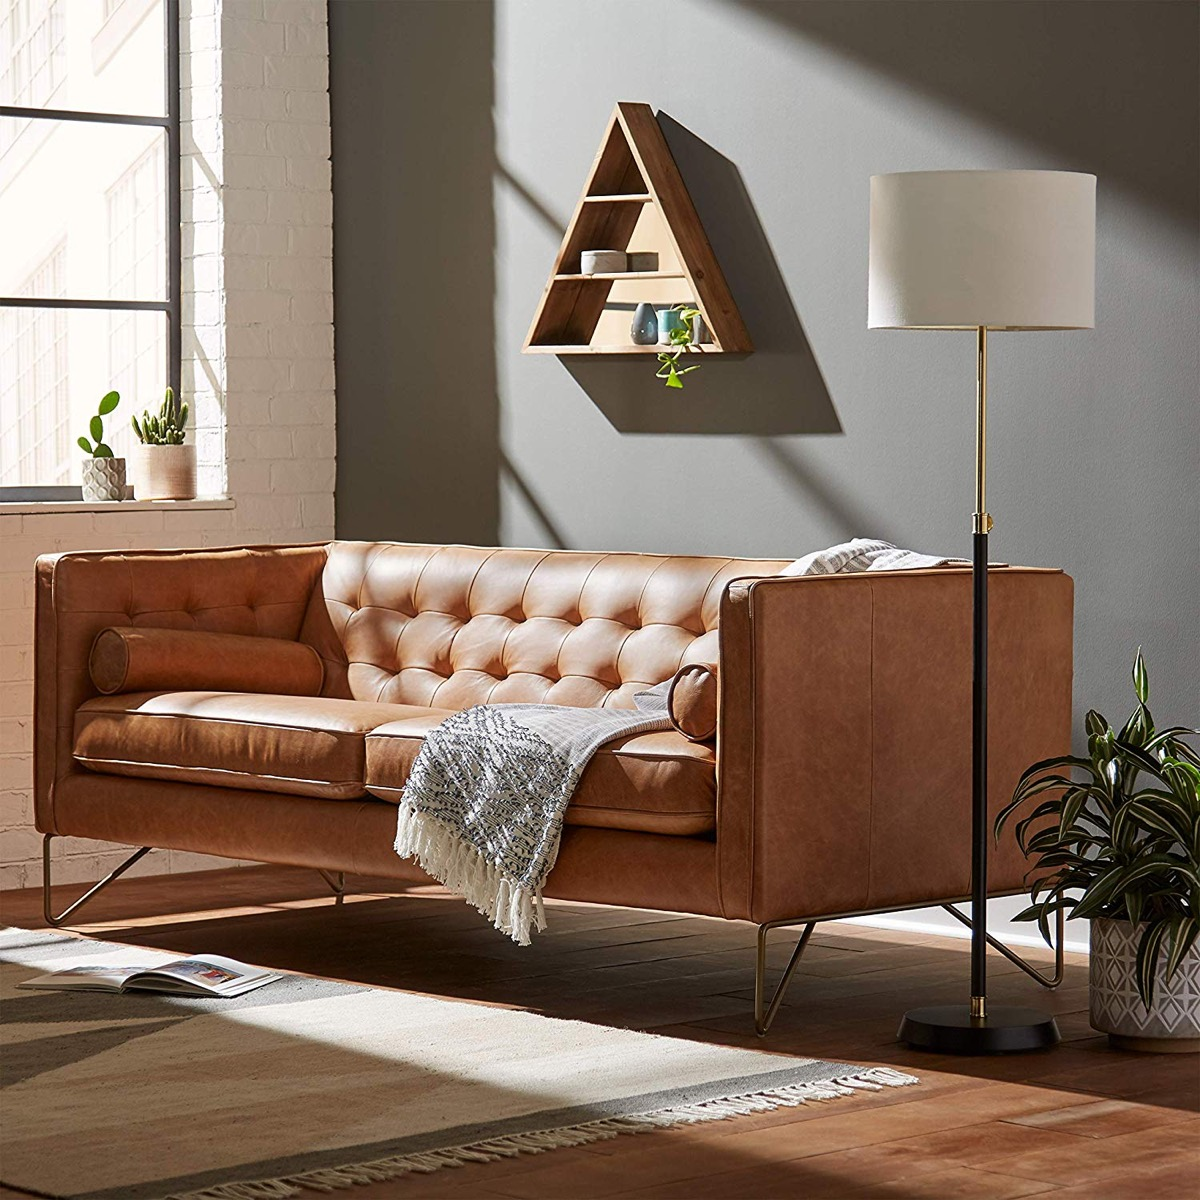 tufted-leather-sofa-with-tilted-seat-and-backrest